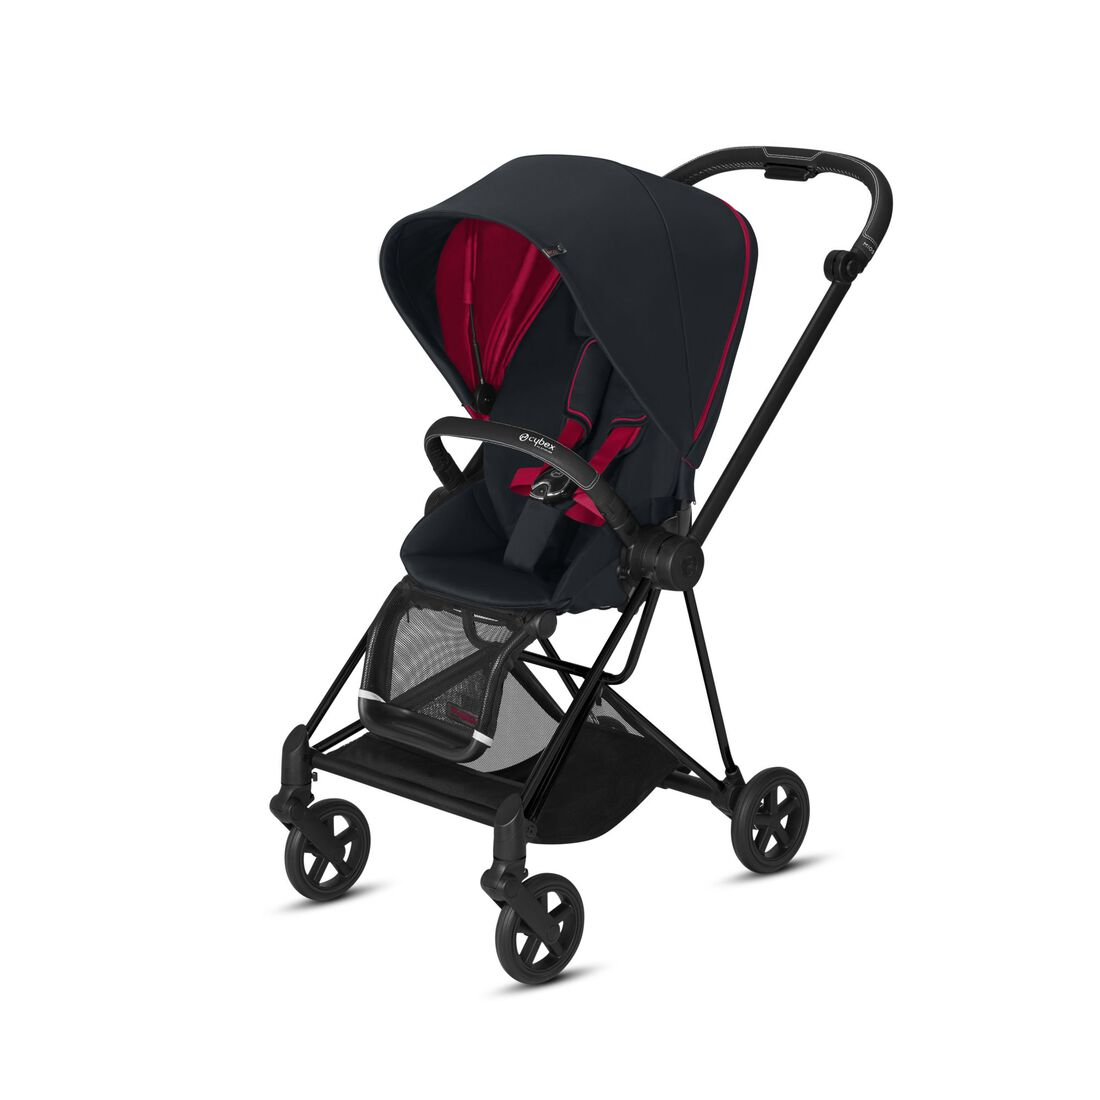 CYBEX Mios Seat Pack - Ferrari Victory Black in Ferrari Victory Black large image number 2